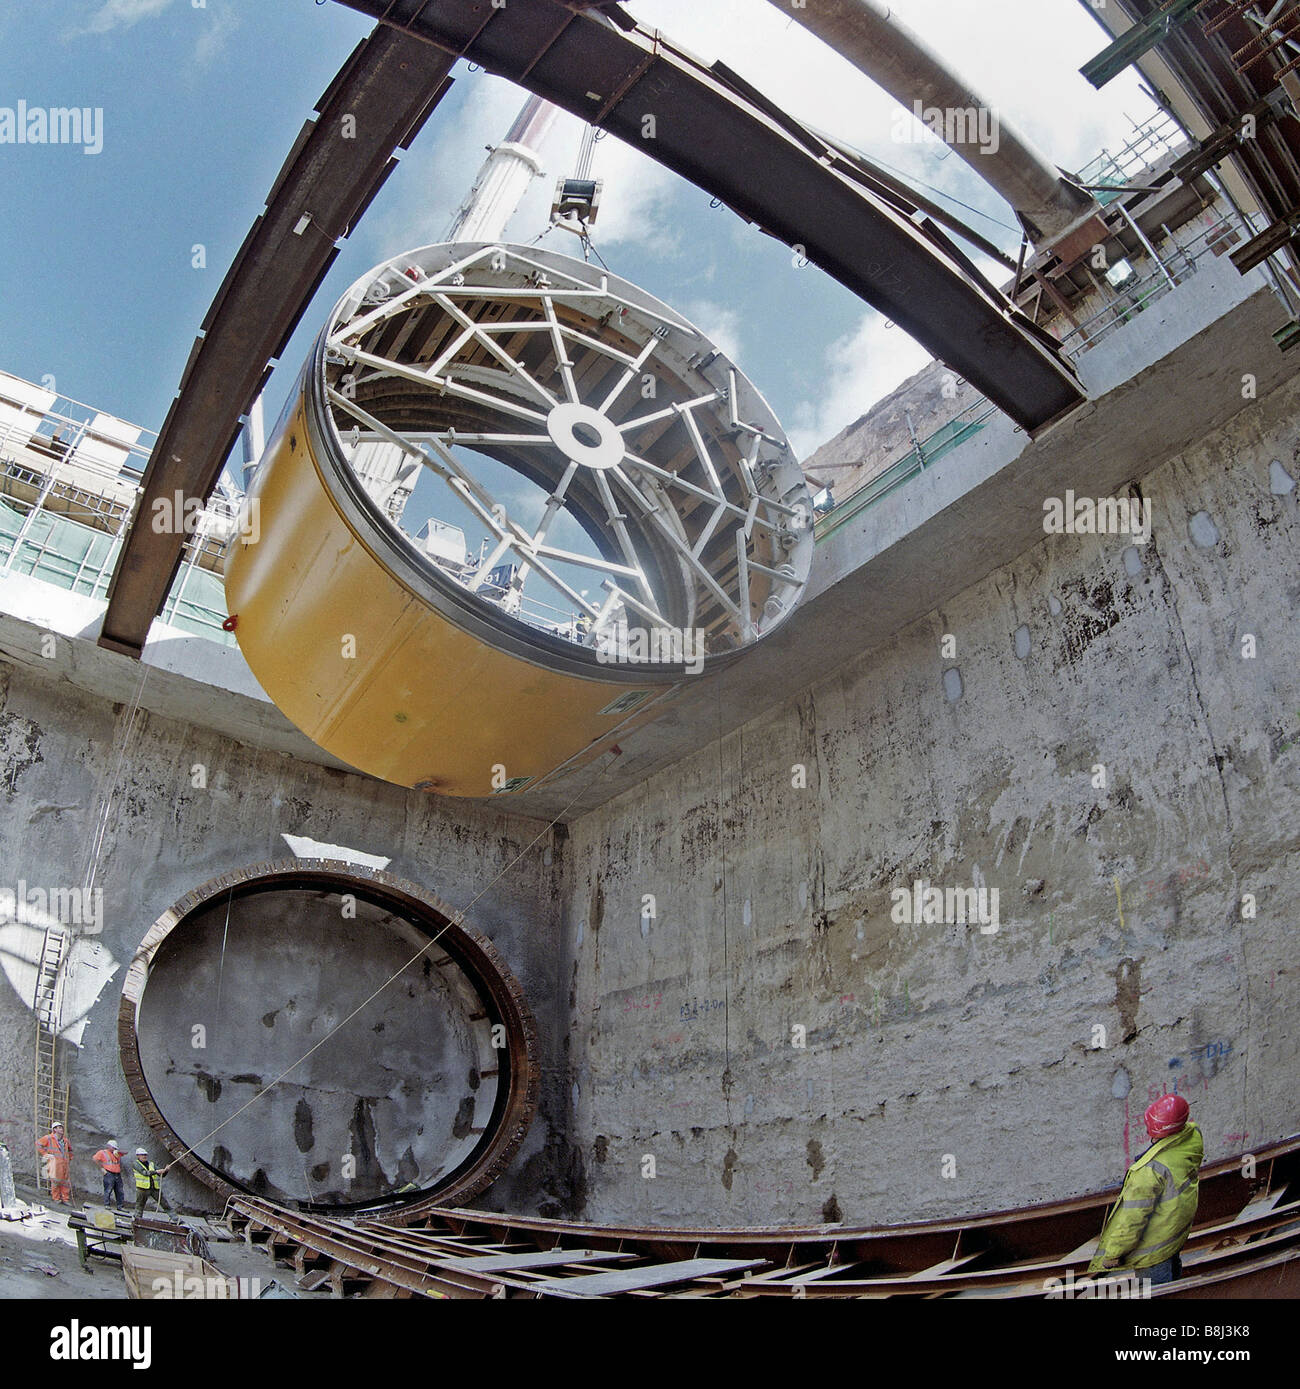 Tunnel boring machine 'Milly the Muncher' for the Thames Tunnel on the Channel Tunnel Rail Link is lowered - Stock Image